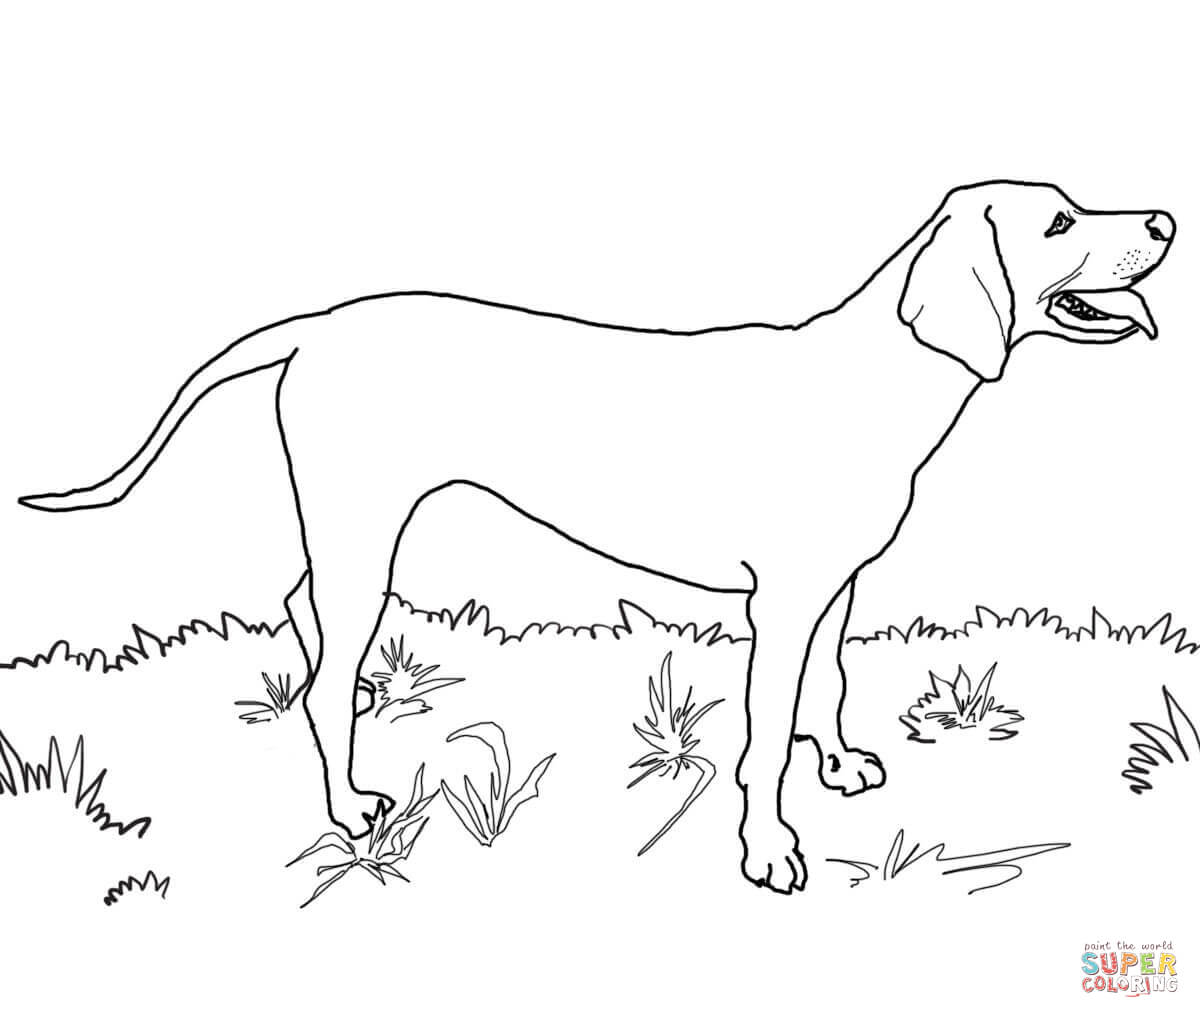 Great Dane Dog Coloring Pages - Coloring Home